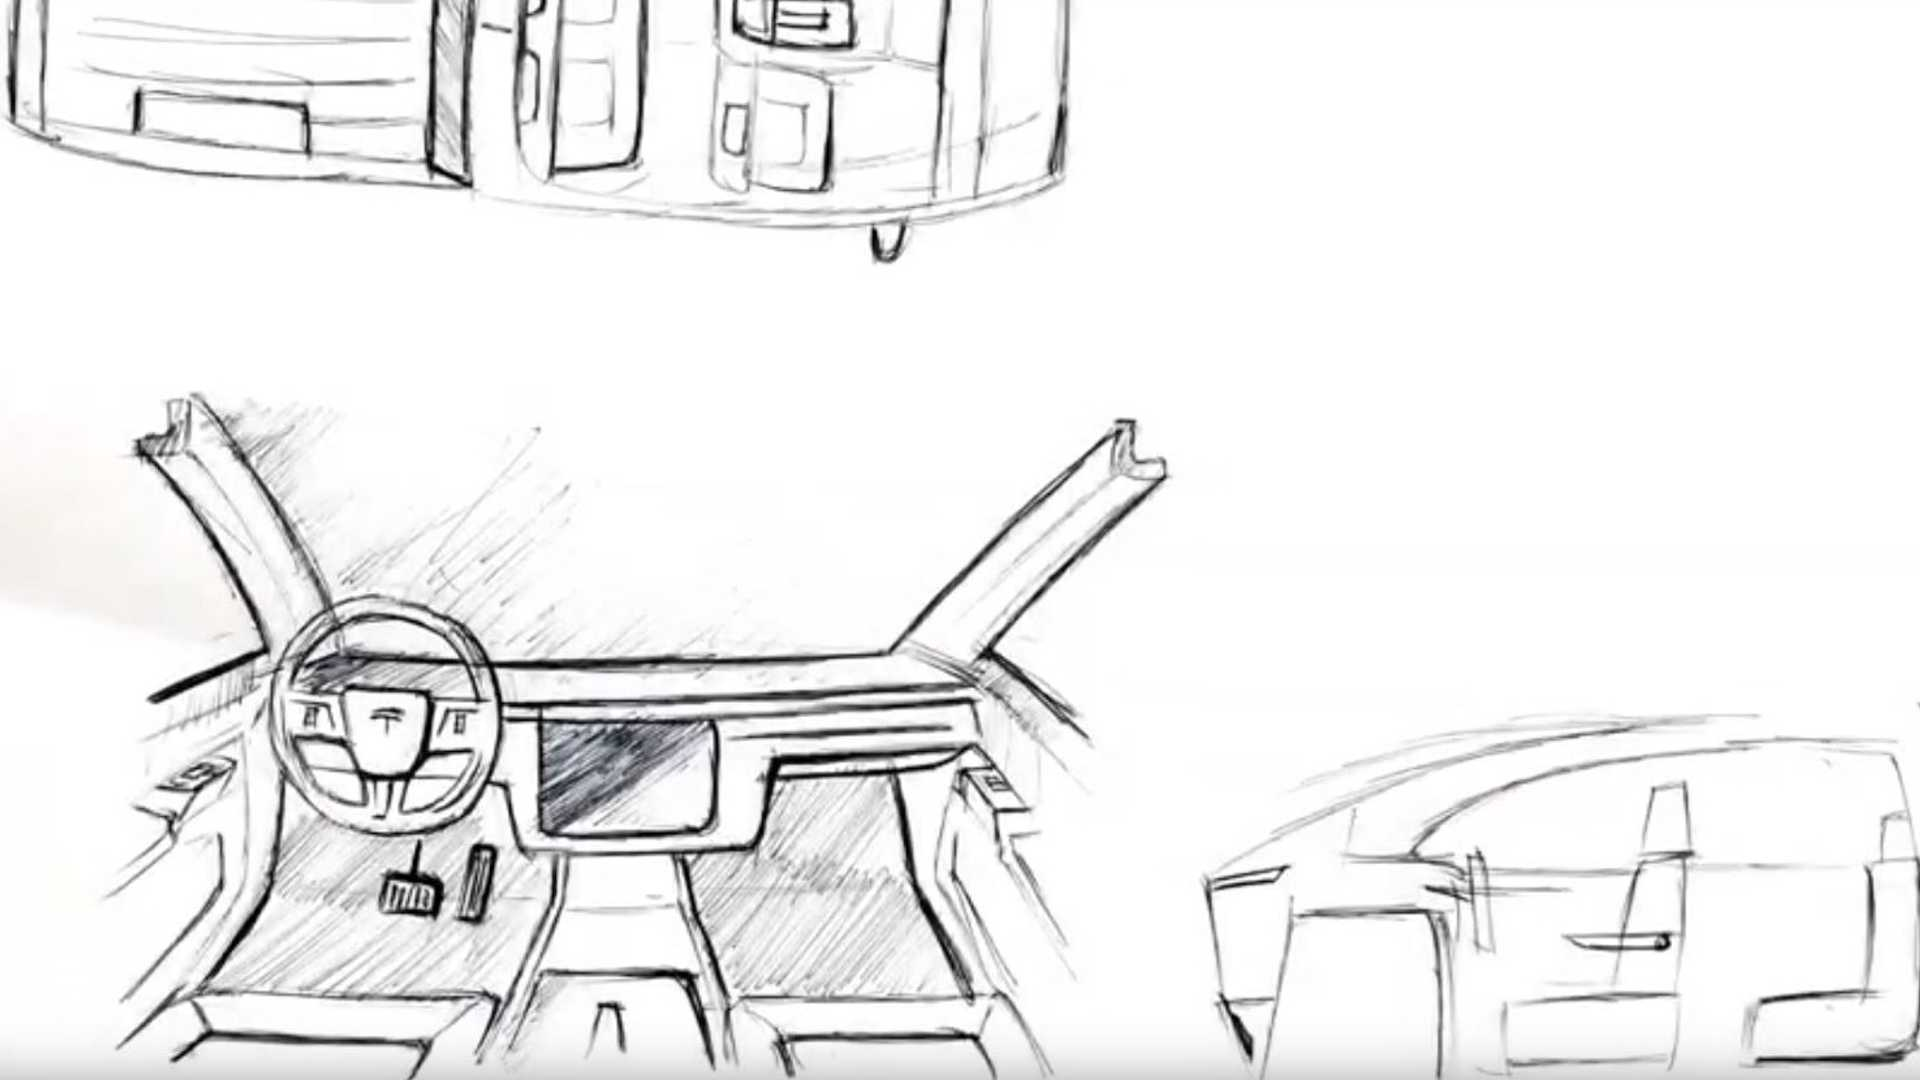 Tesla Pickup Truck Interior Sketches Combine Model 3 And